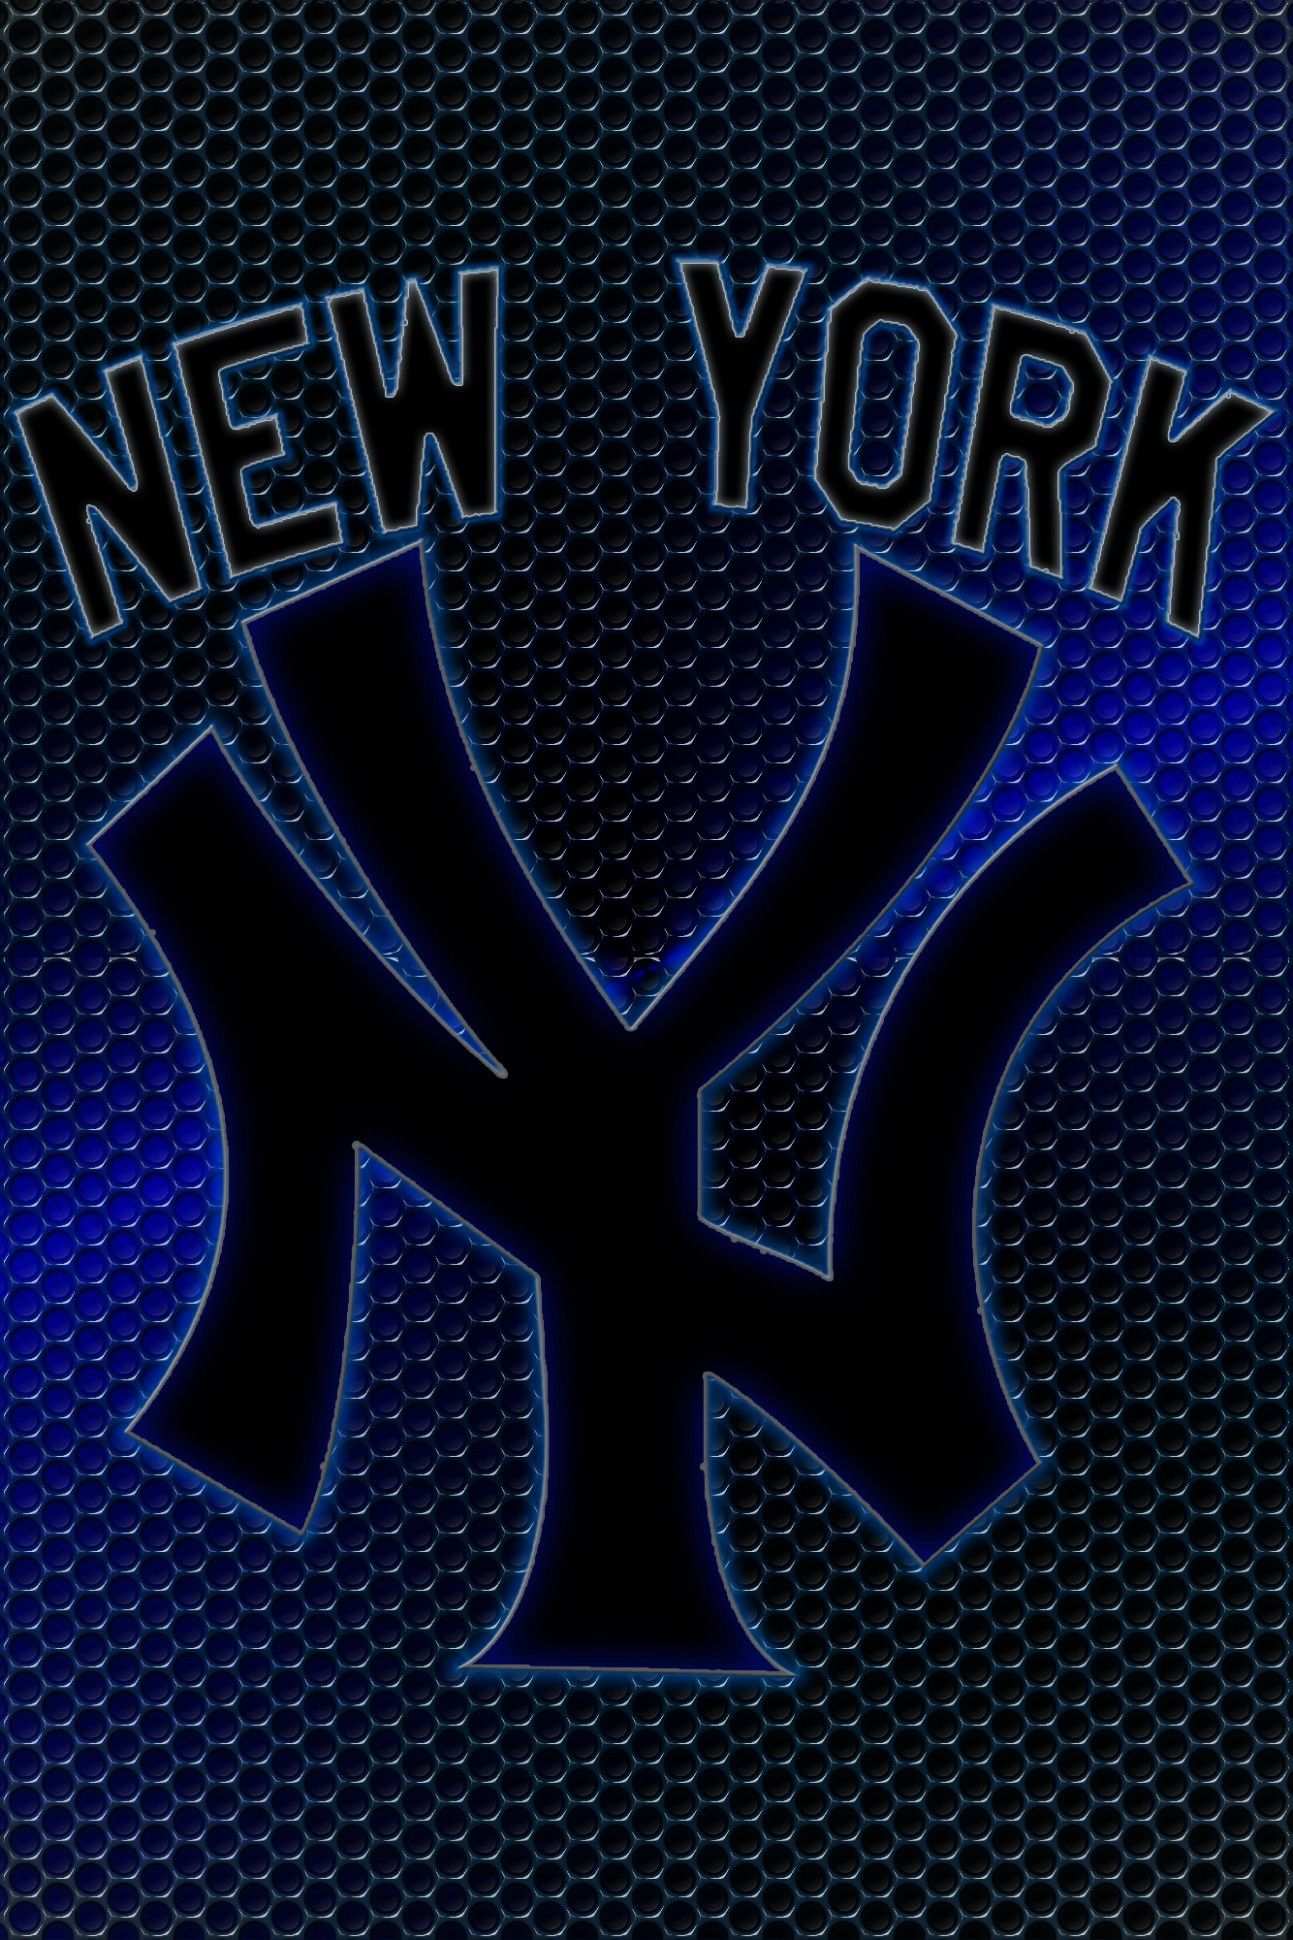 Wallpaper Iphone Yankees Logo 3 Small But Important Things To Observe In Wallpaper Iphone Ya Di 2020 New York Yankees New York Baseball